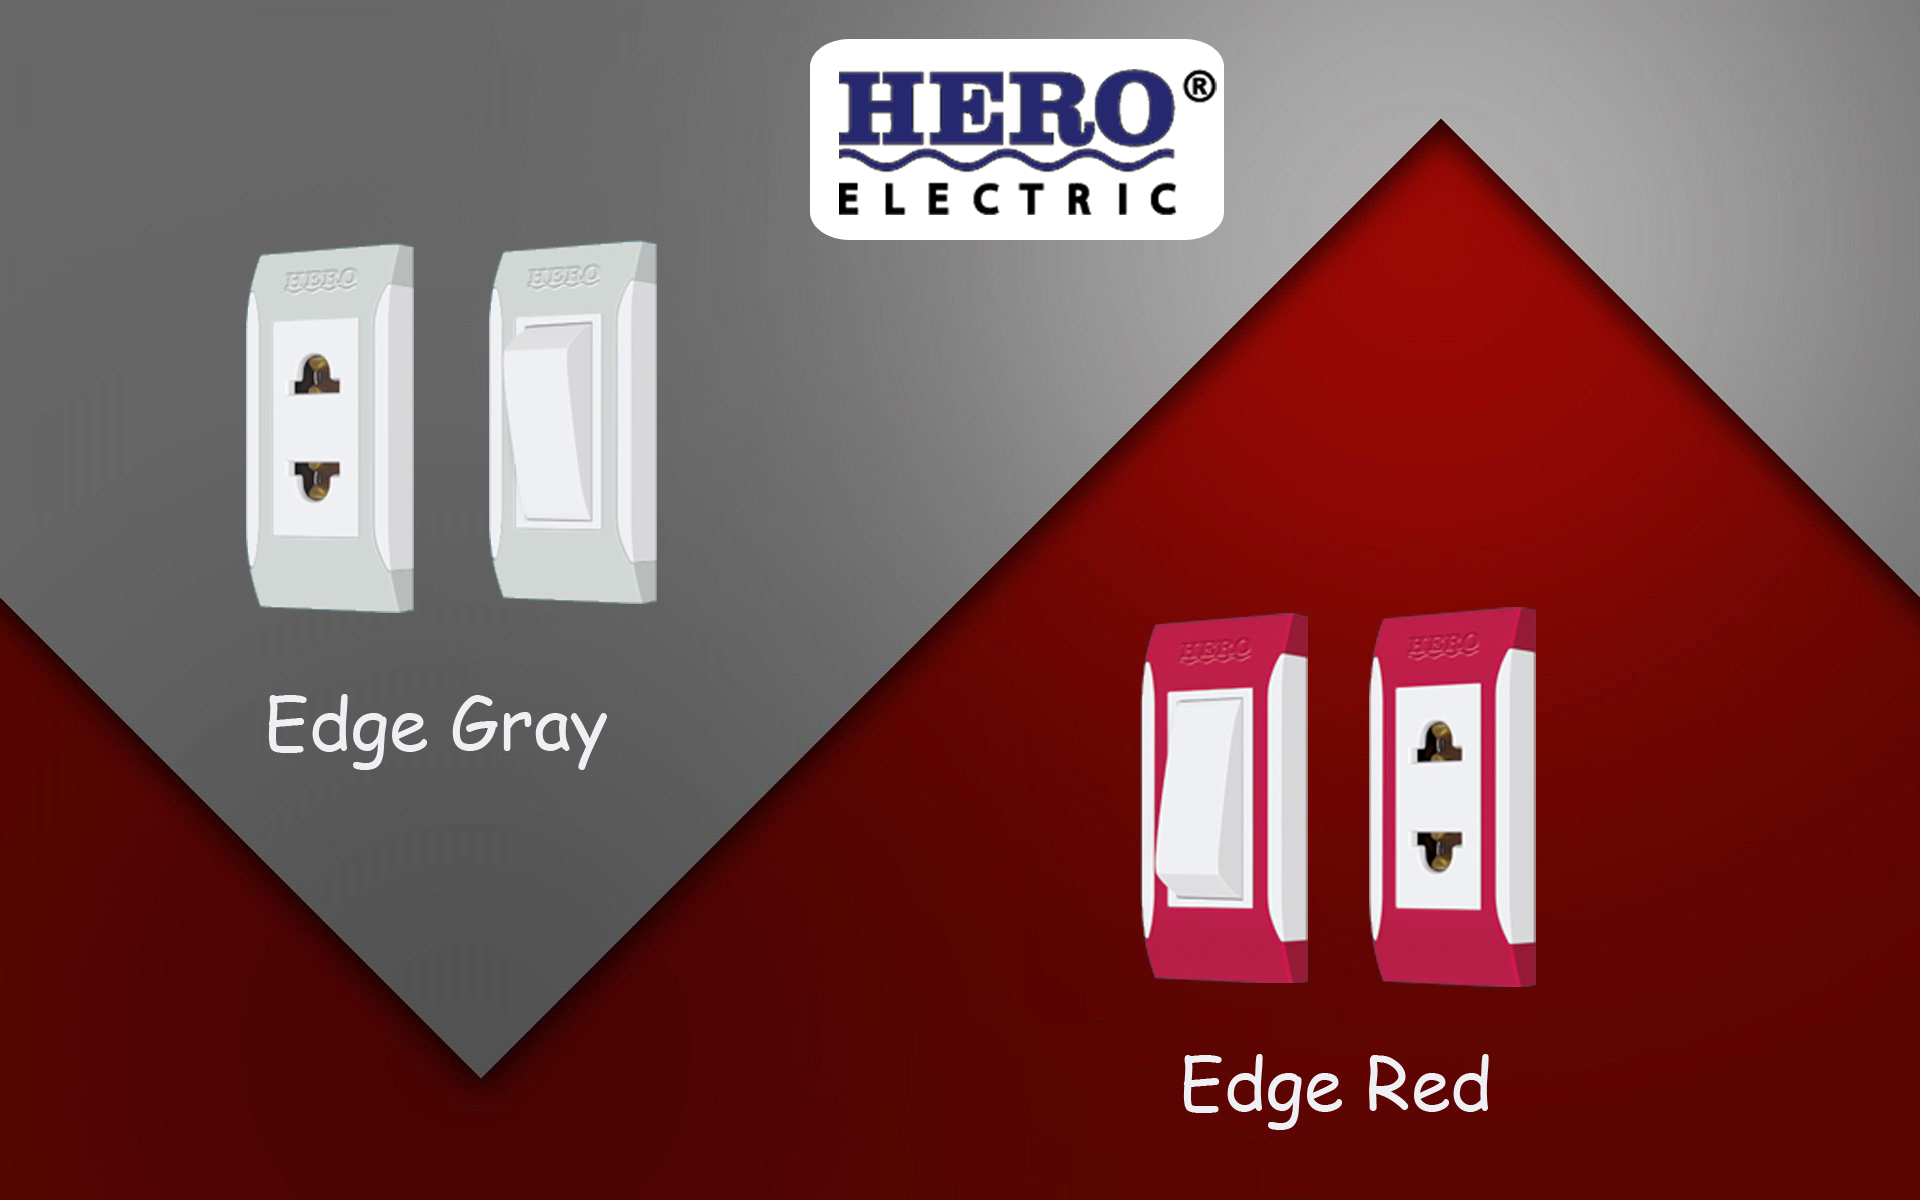 edge-gray-red-hero-electric-products-pakistan